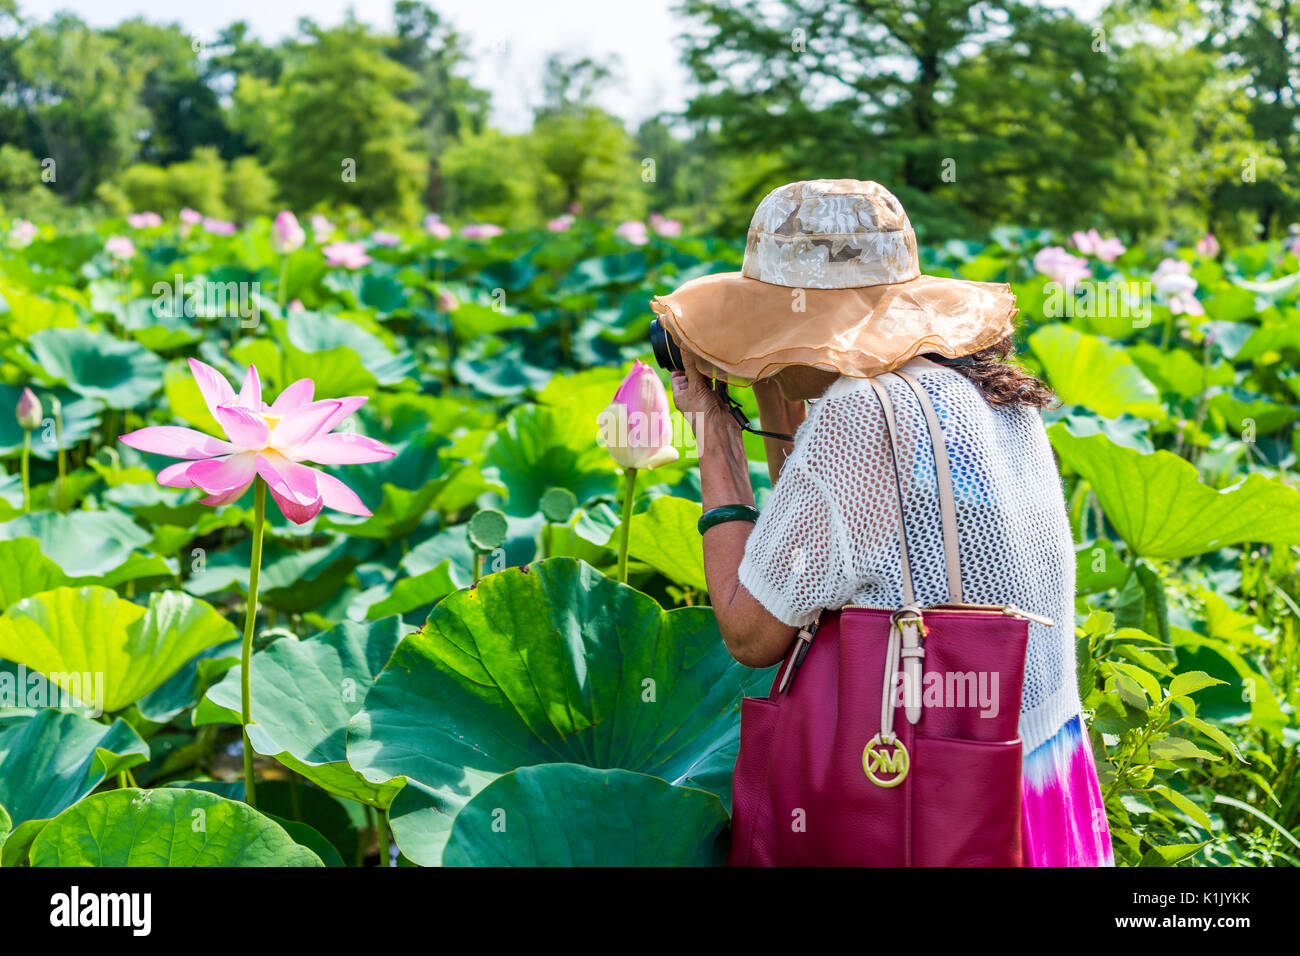 Pink lotus flowers stock photos pink lotus flowers stock images washington dc usa july 23 2017 bright white and pink lotus flowers izmirmasajfo